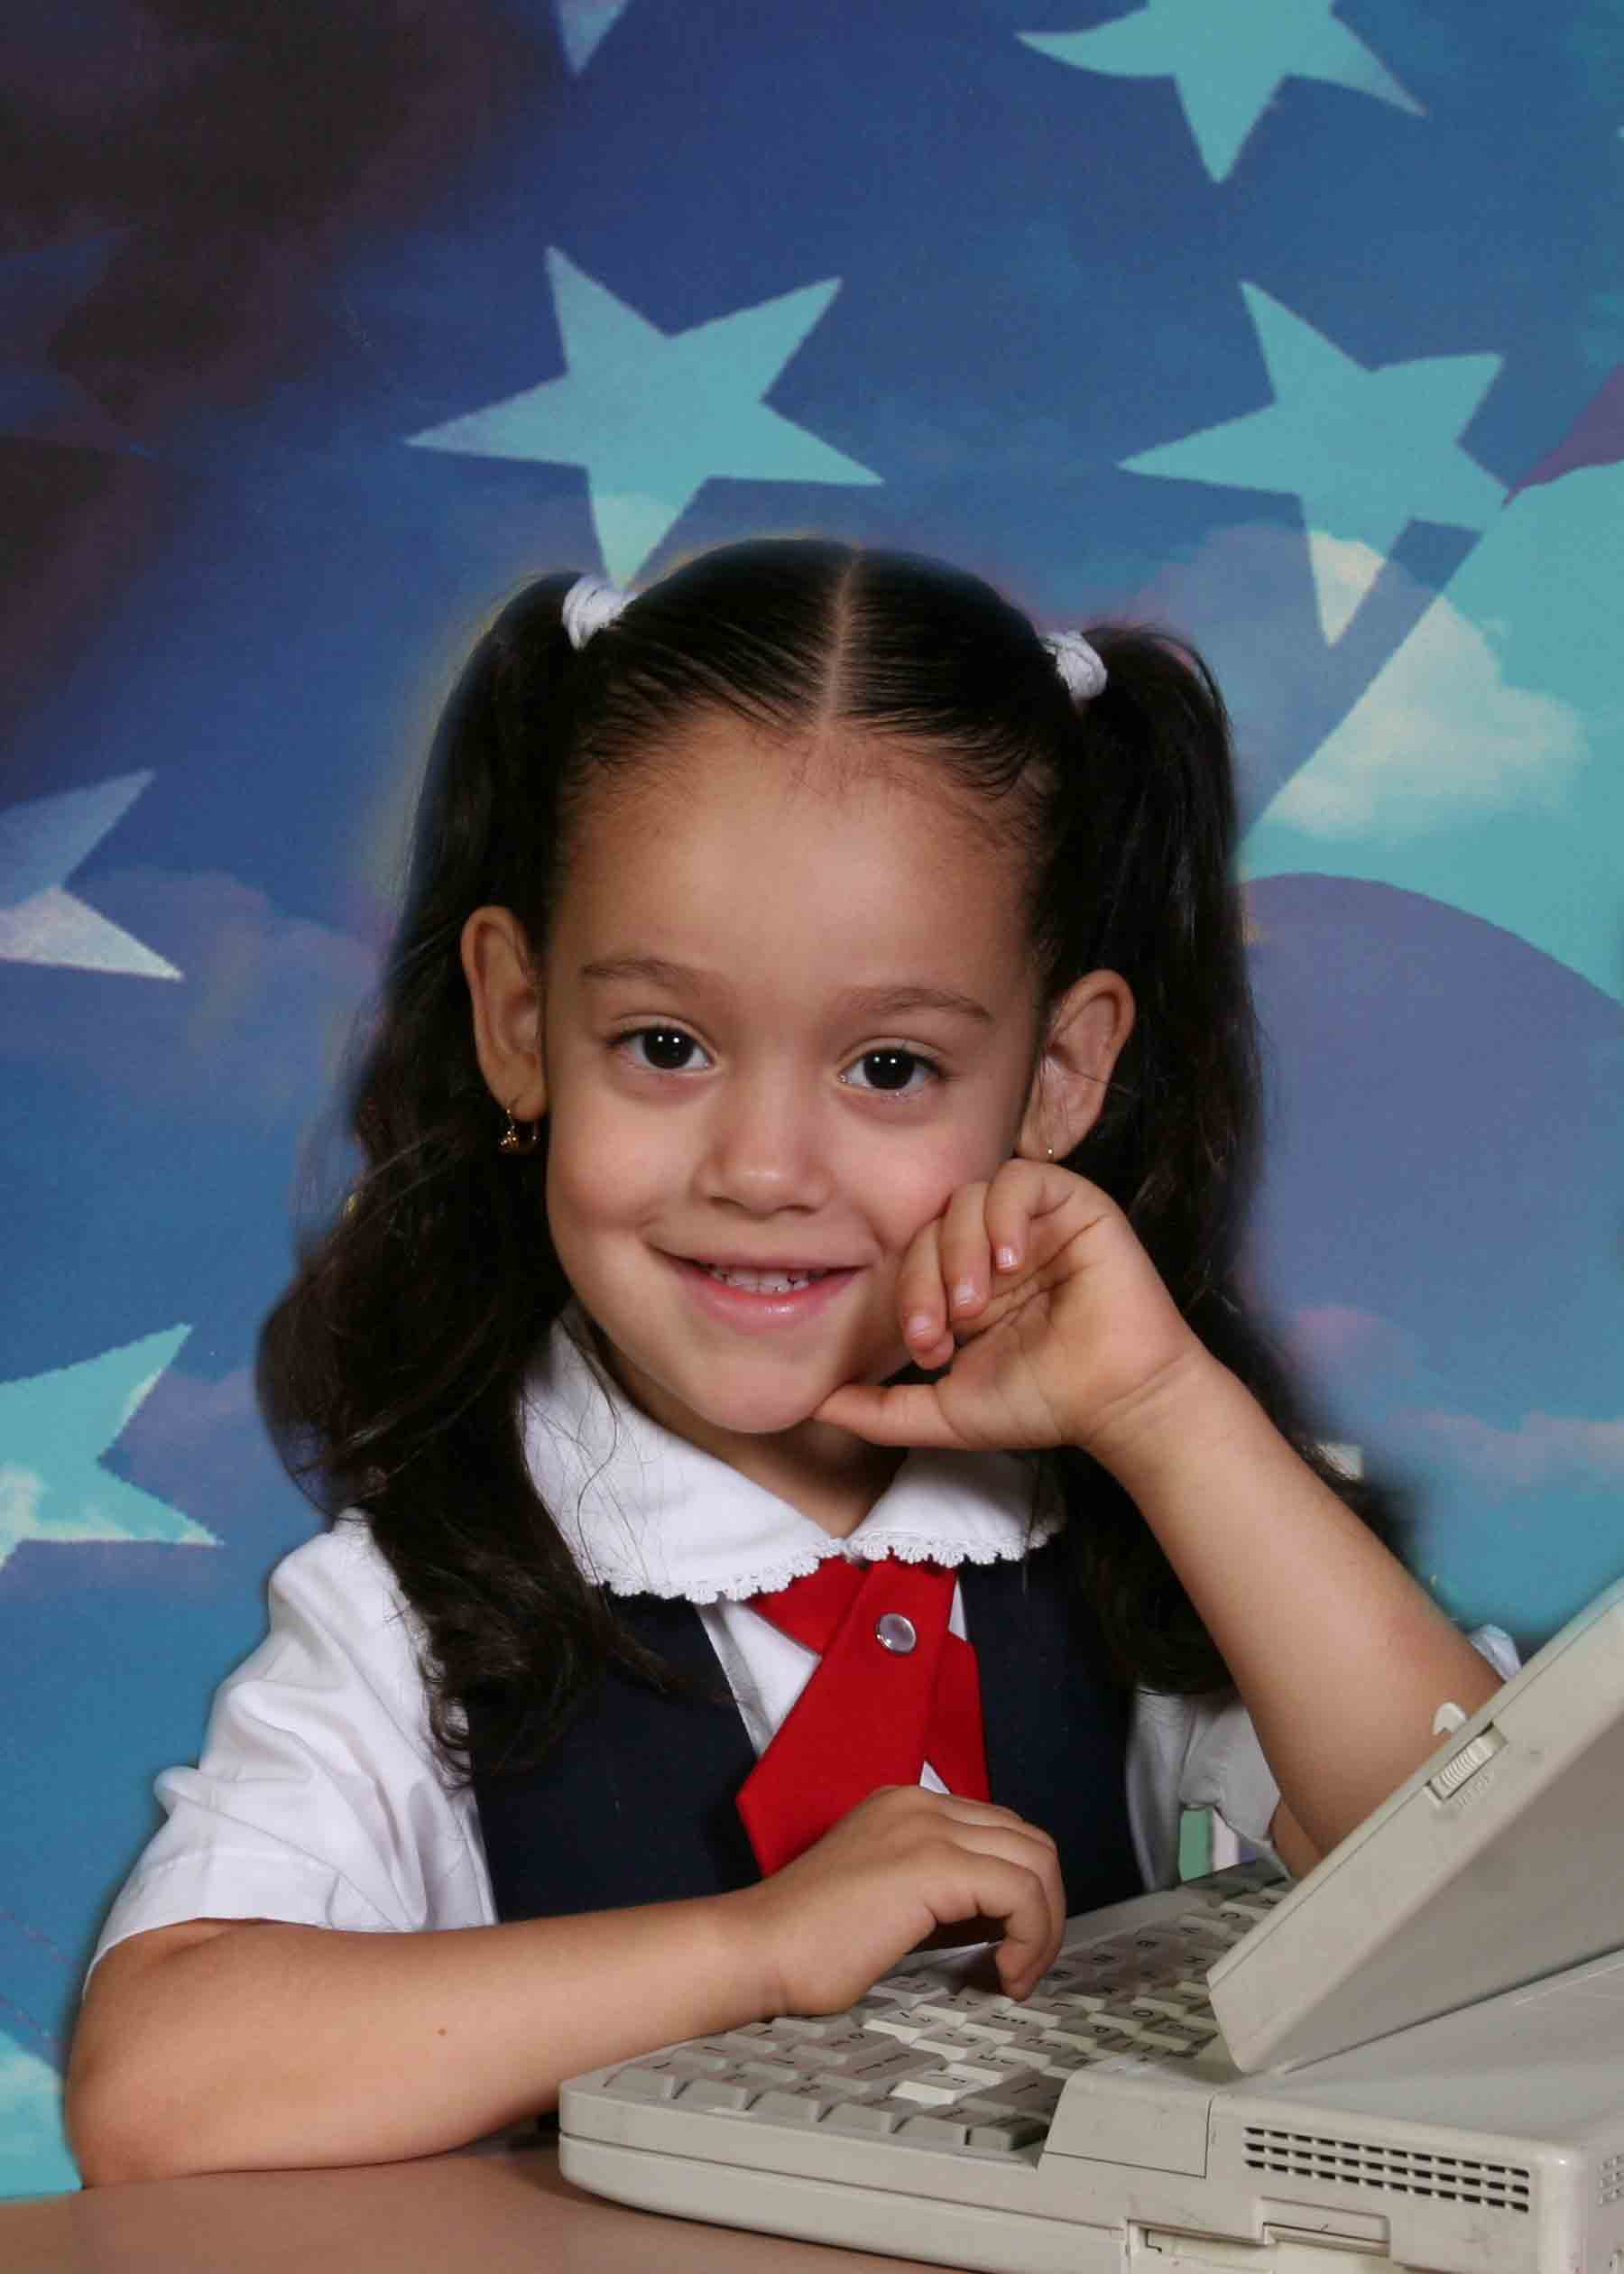 School Portraits From Greater Nyc And Long Island Nurseries Preschools Schools Seniors Sports Camps Professional Photography Company